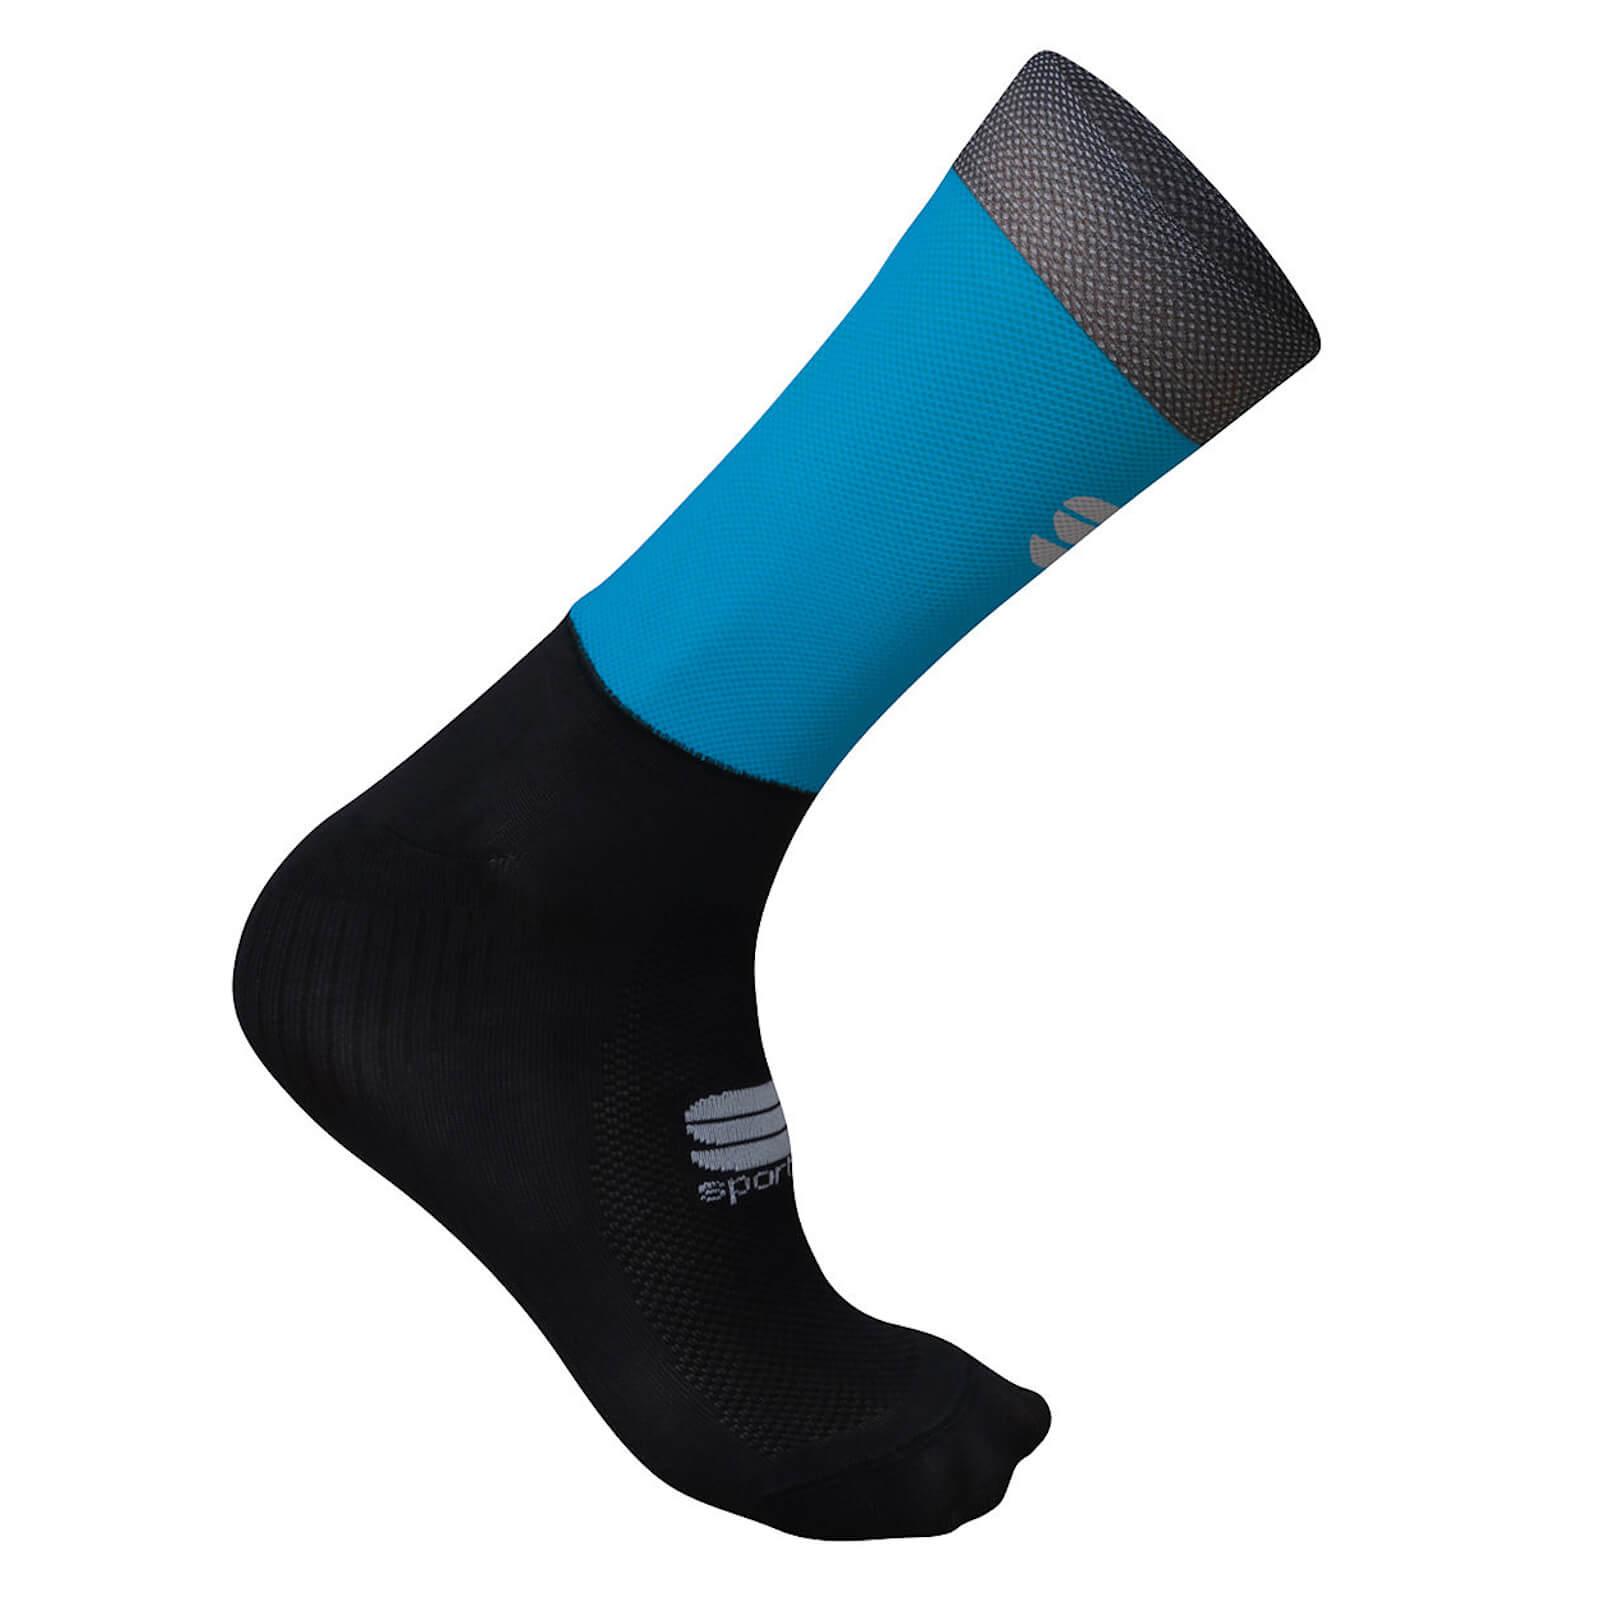 Sportful Supergiara Socks - S - Blue Atomic/Black